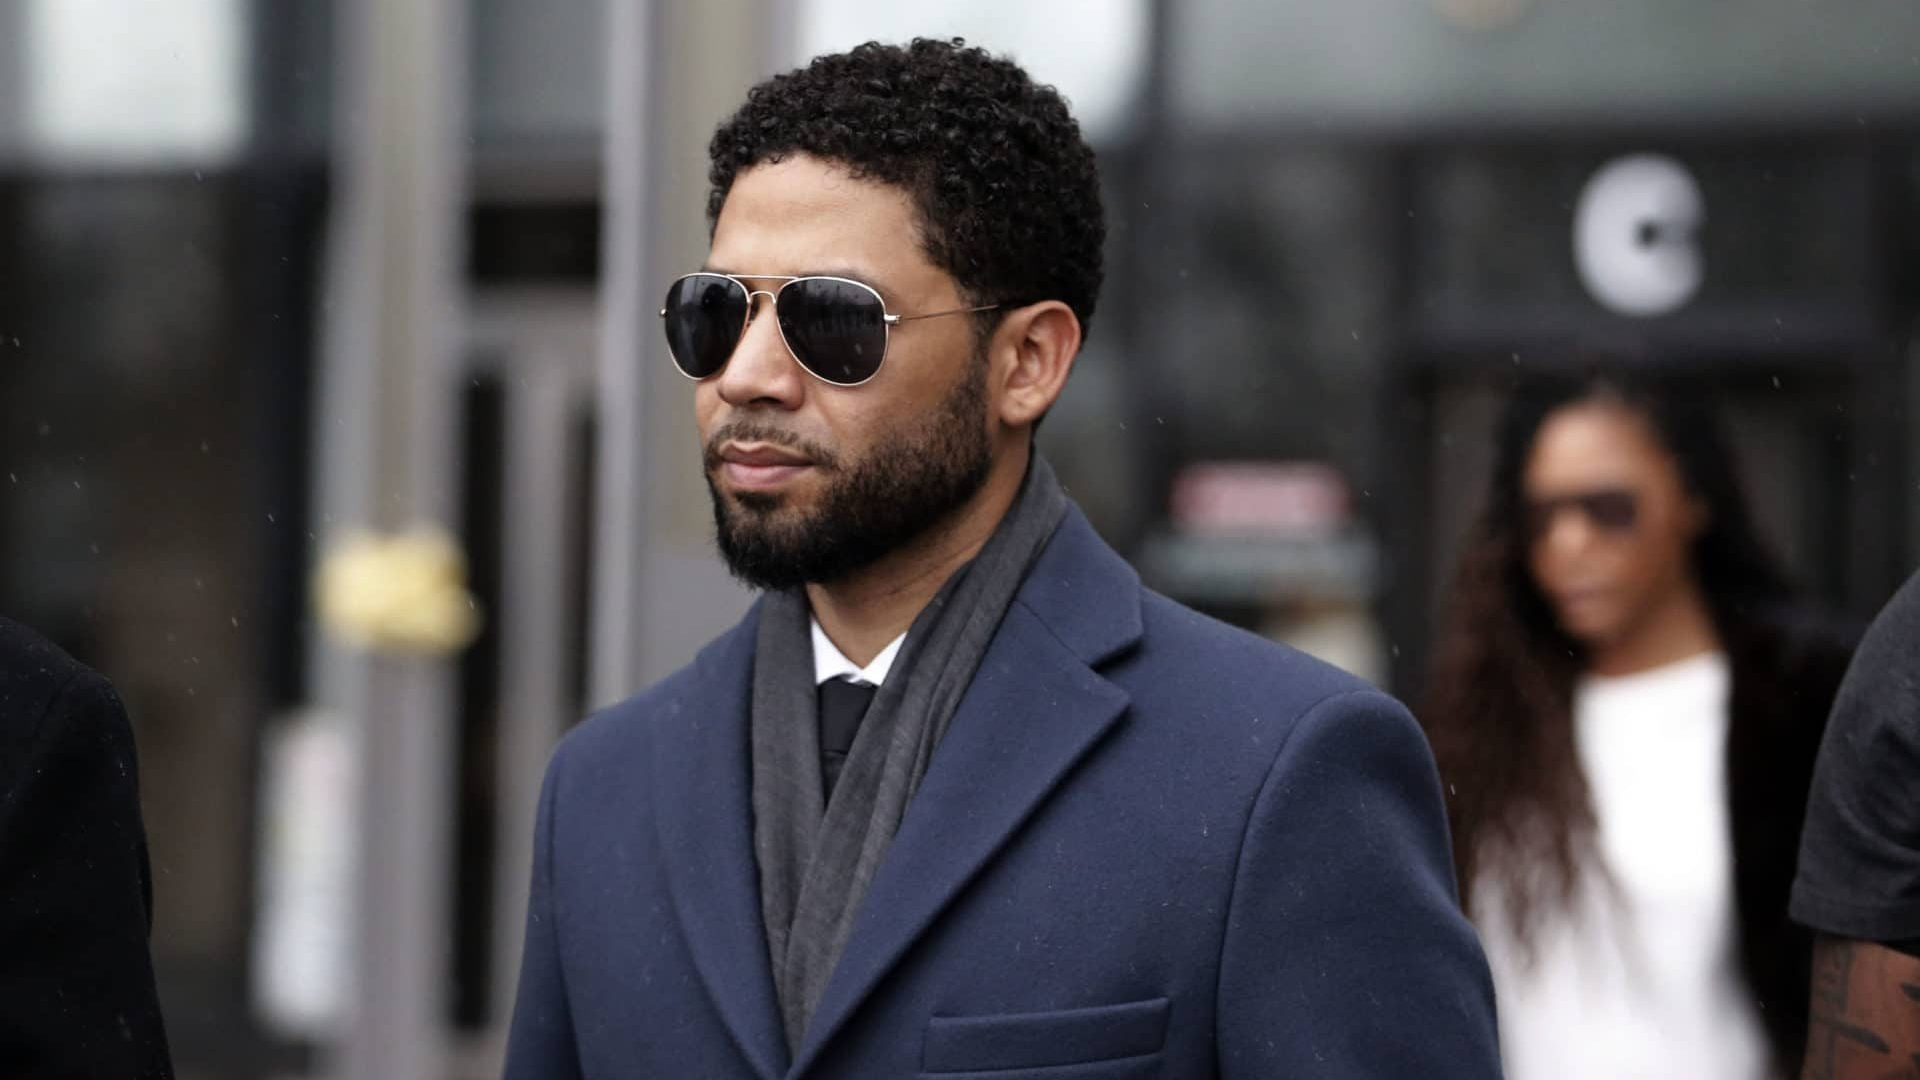 Chicago Demands $130,000 From Jussie Smollett For Cost Of Investigation